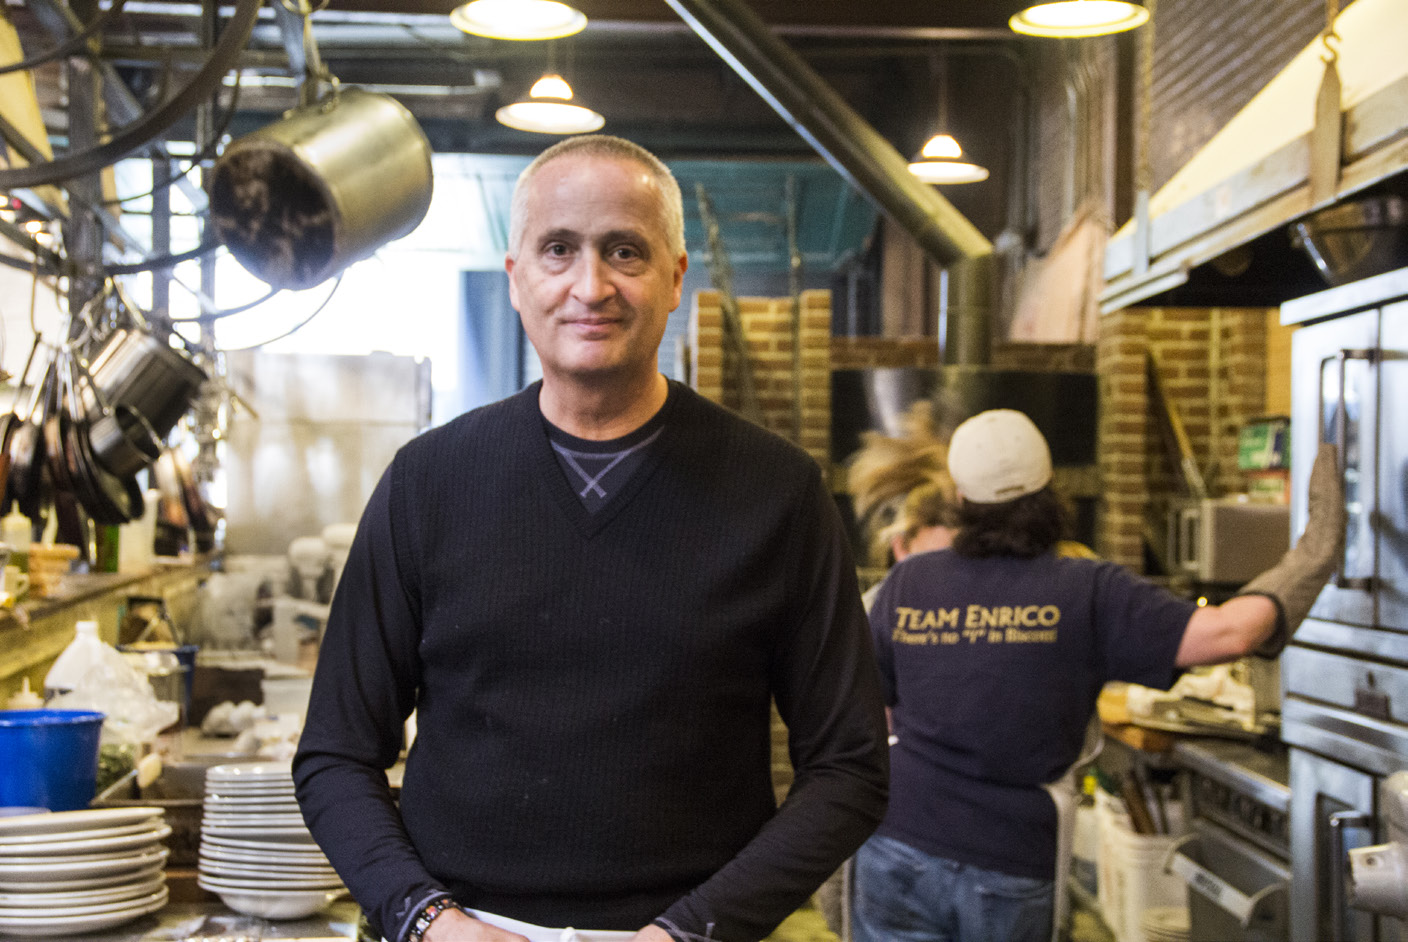 Learn More about The Enrico Biscotti Co. -